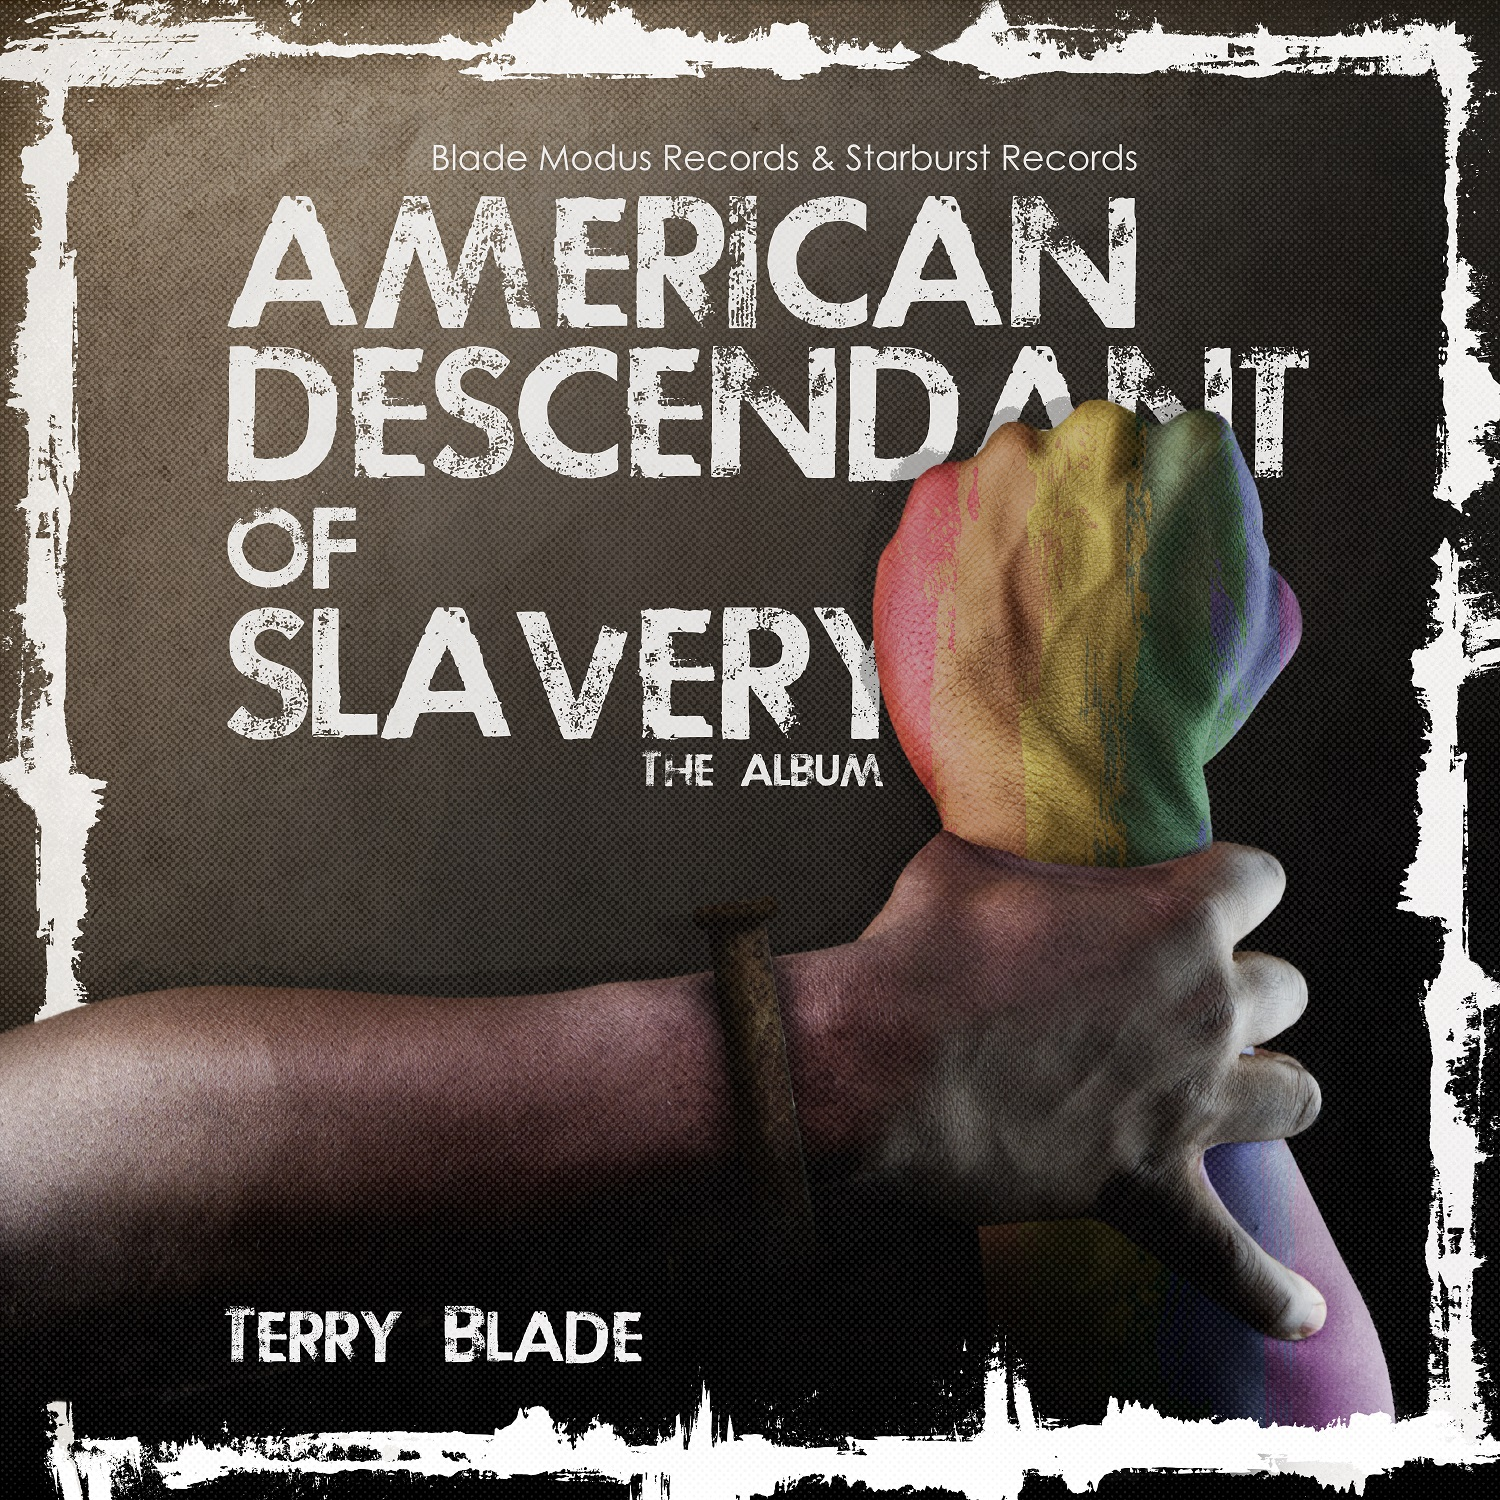 American Descendant of Slavery, The Album